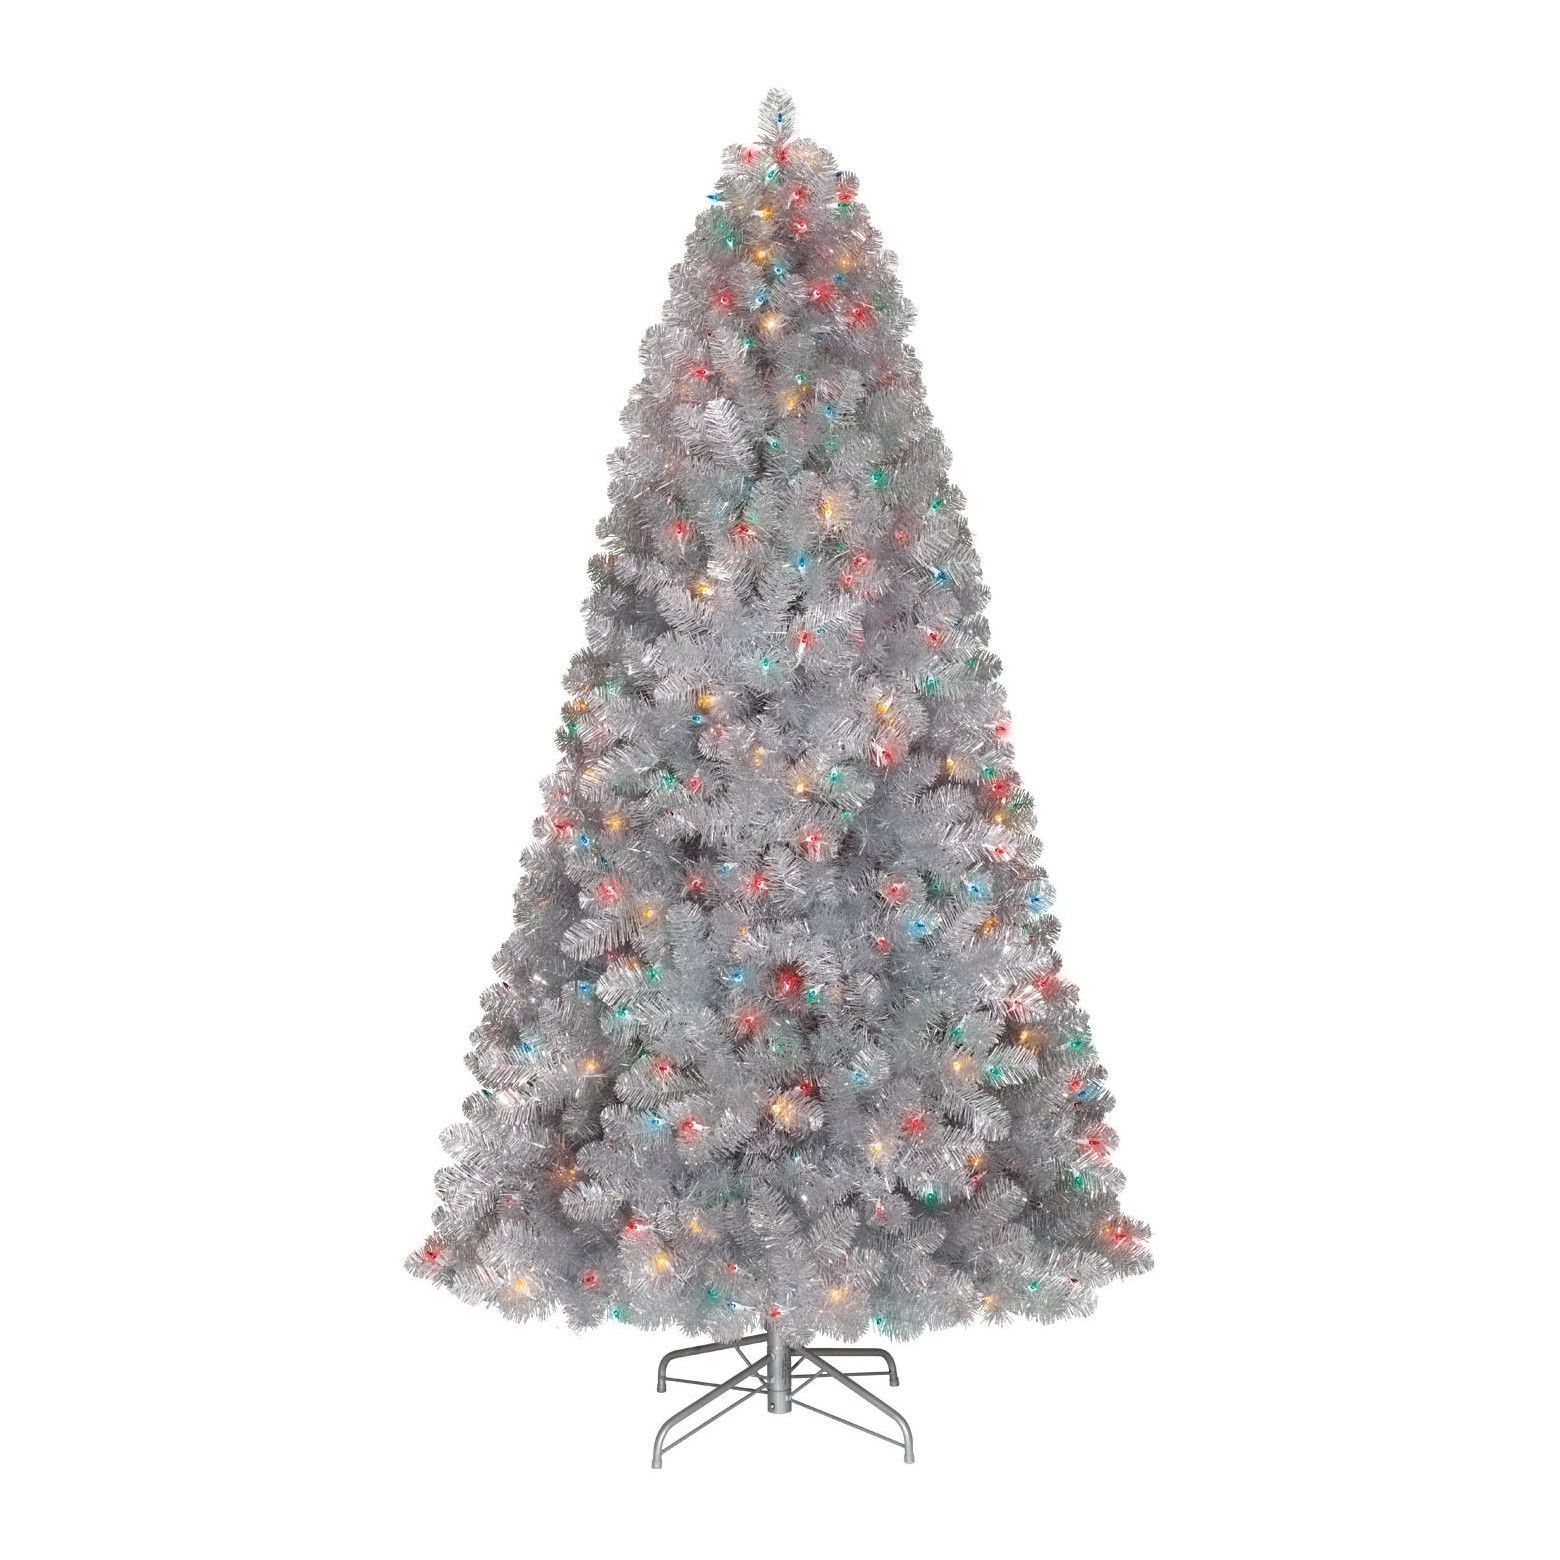 If You Need A Christmas Staple Without Sappy Needles To Clean Up Then An Alberta Spruce Pre Retro Christmas Tree Silver Christmas Tree Rotating Christmas Tree Pre lit rotating christmas tree